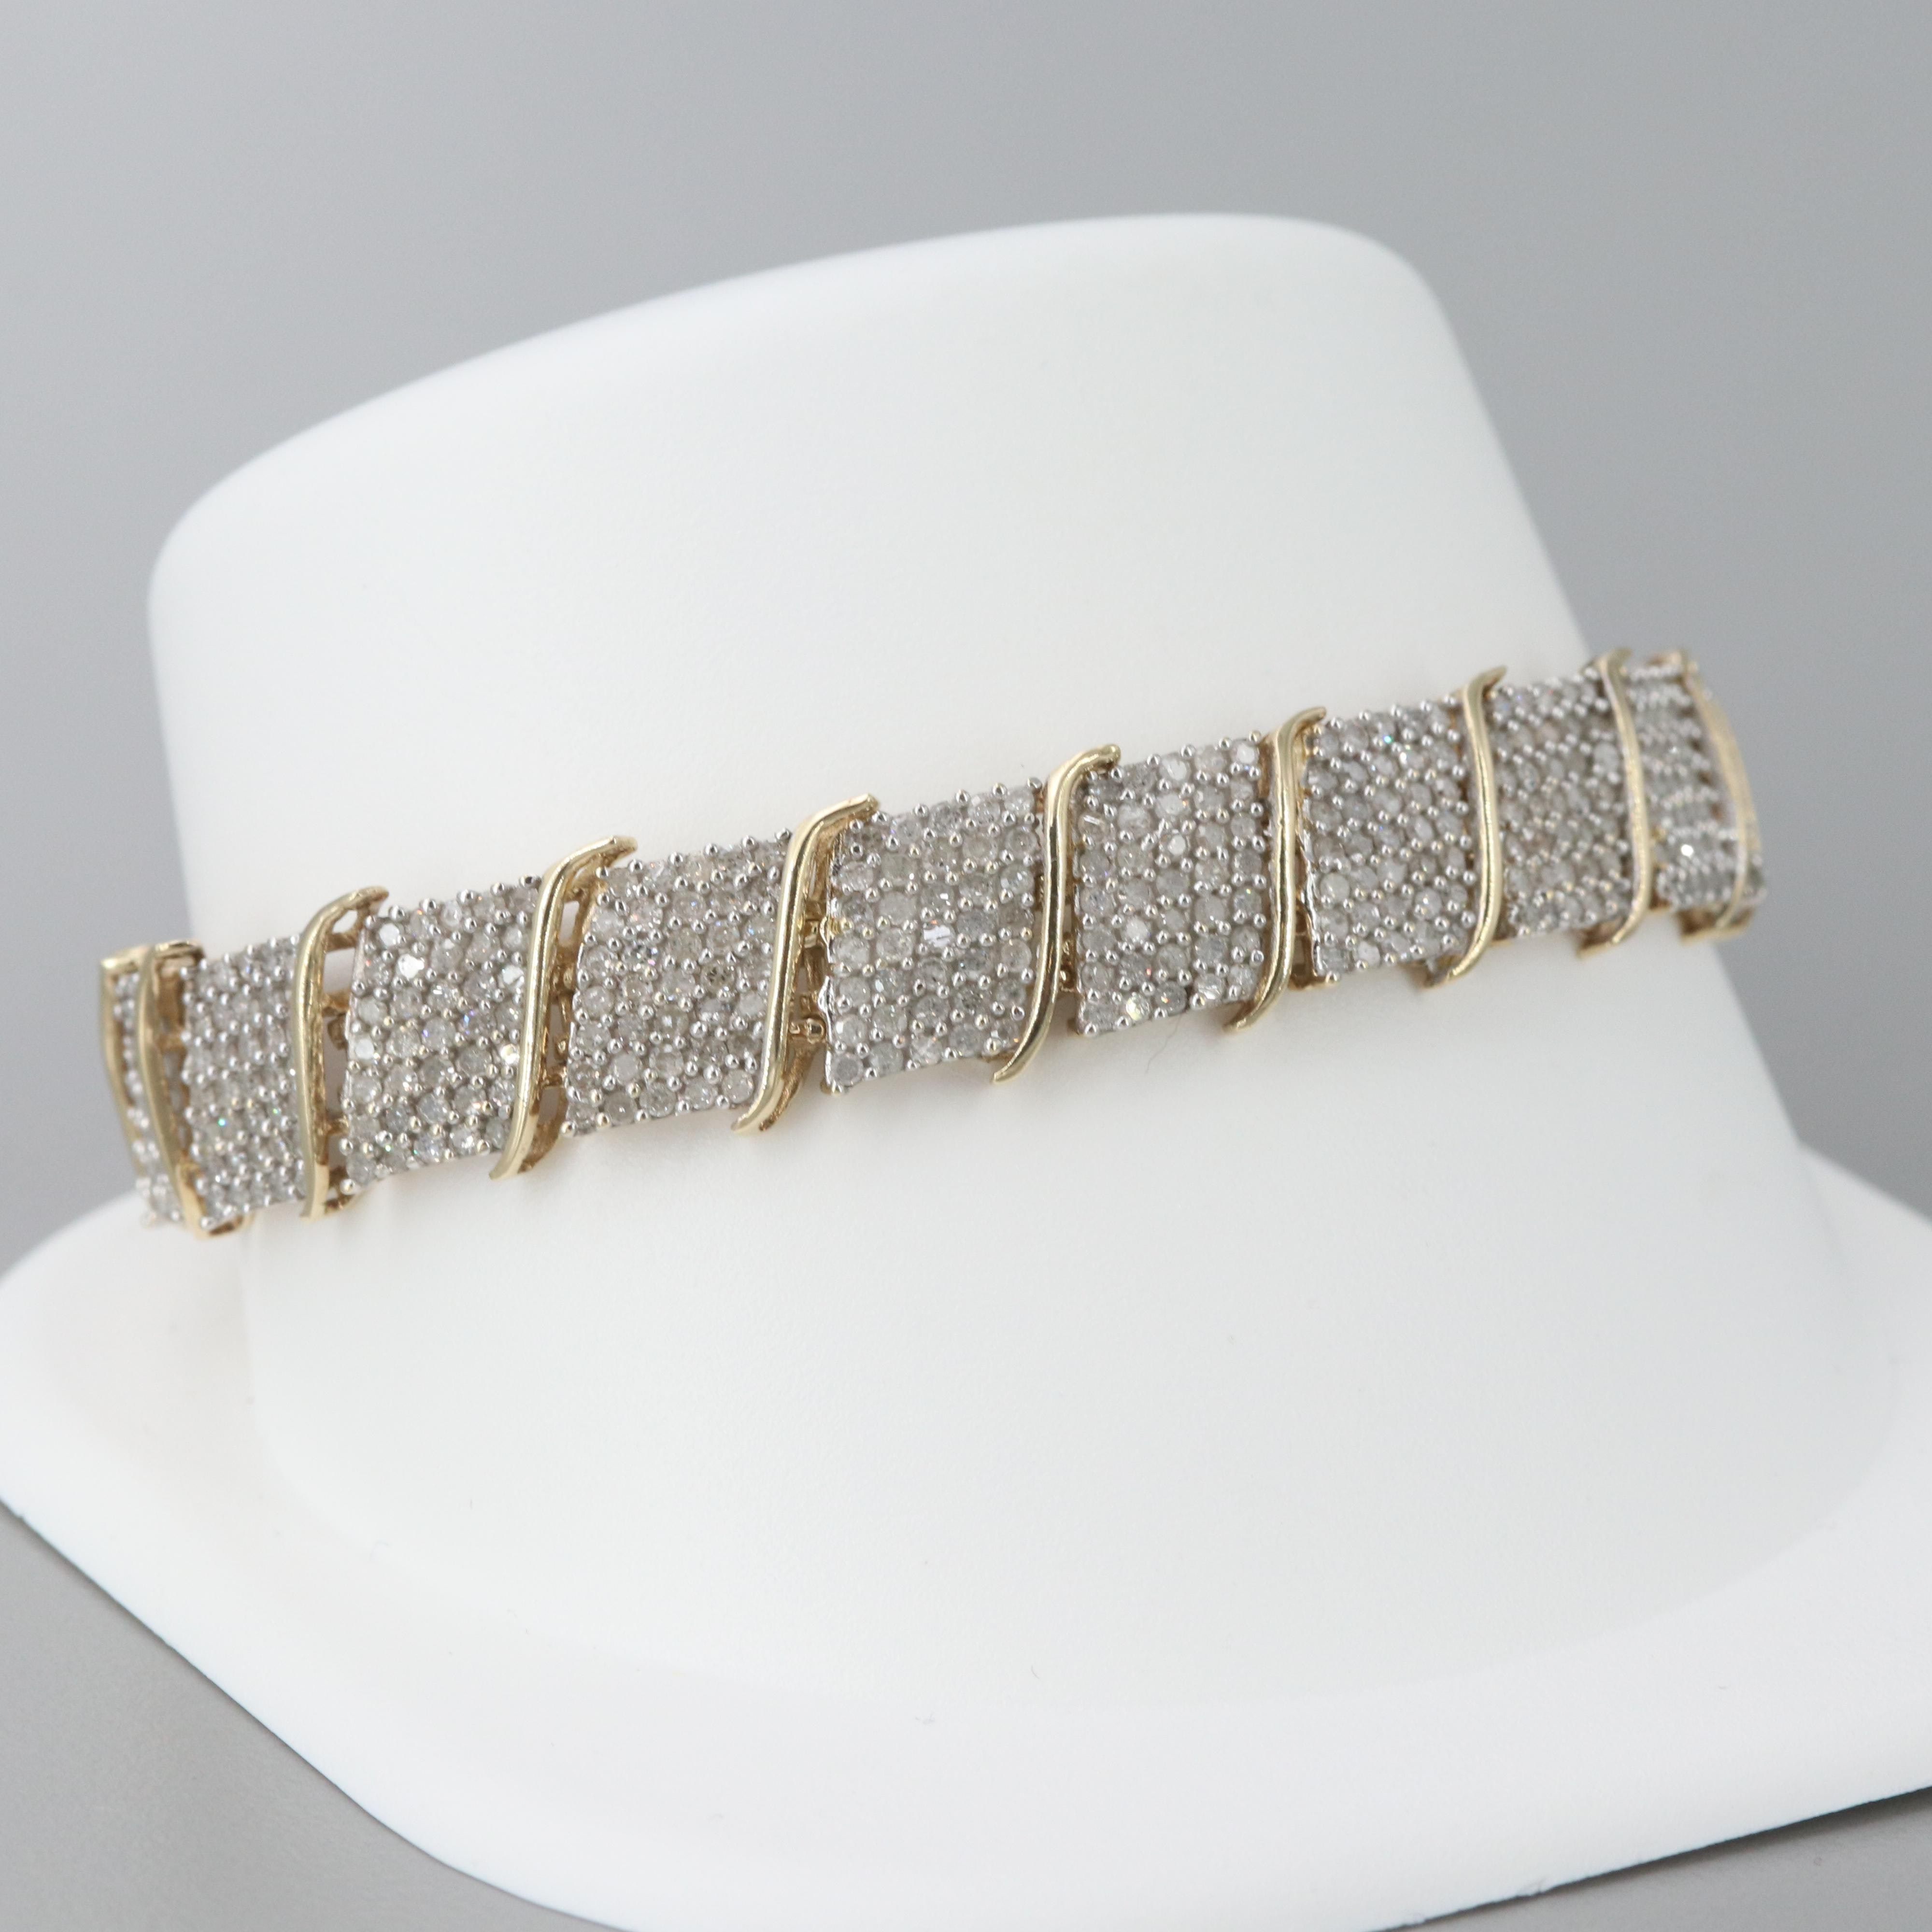 10K Yellow Gold 4.75 CTW Diamond Bracelet